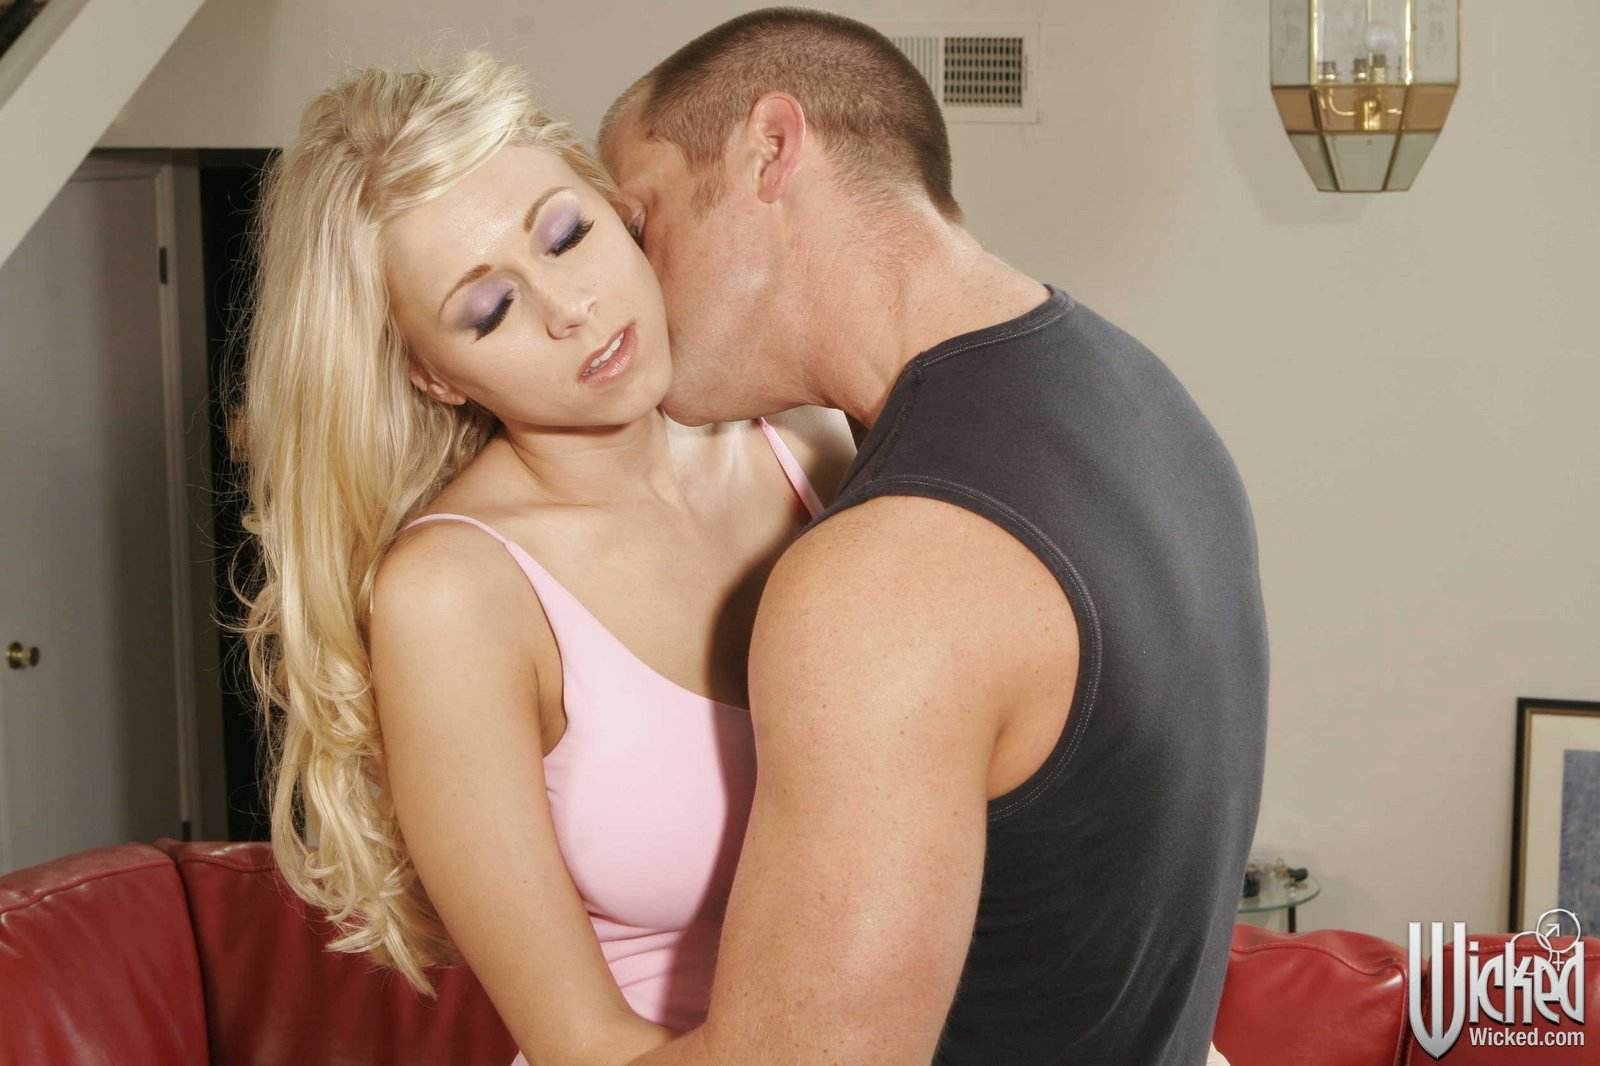 image Cute blonde katia fucked in the ass ros